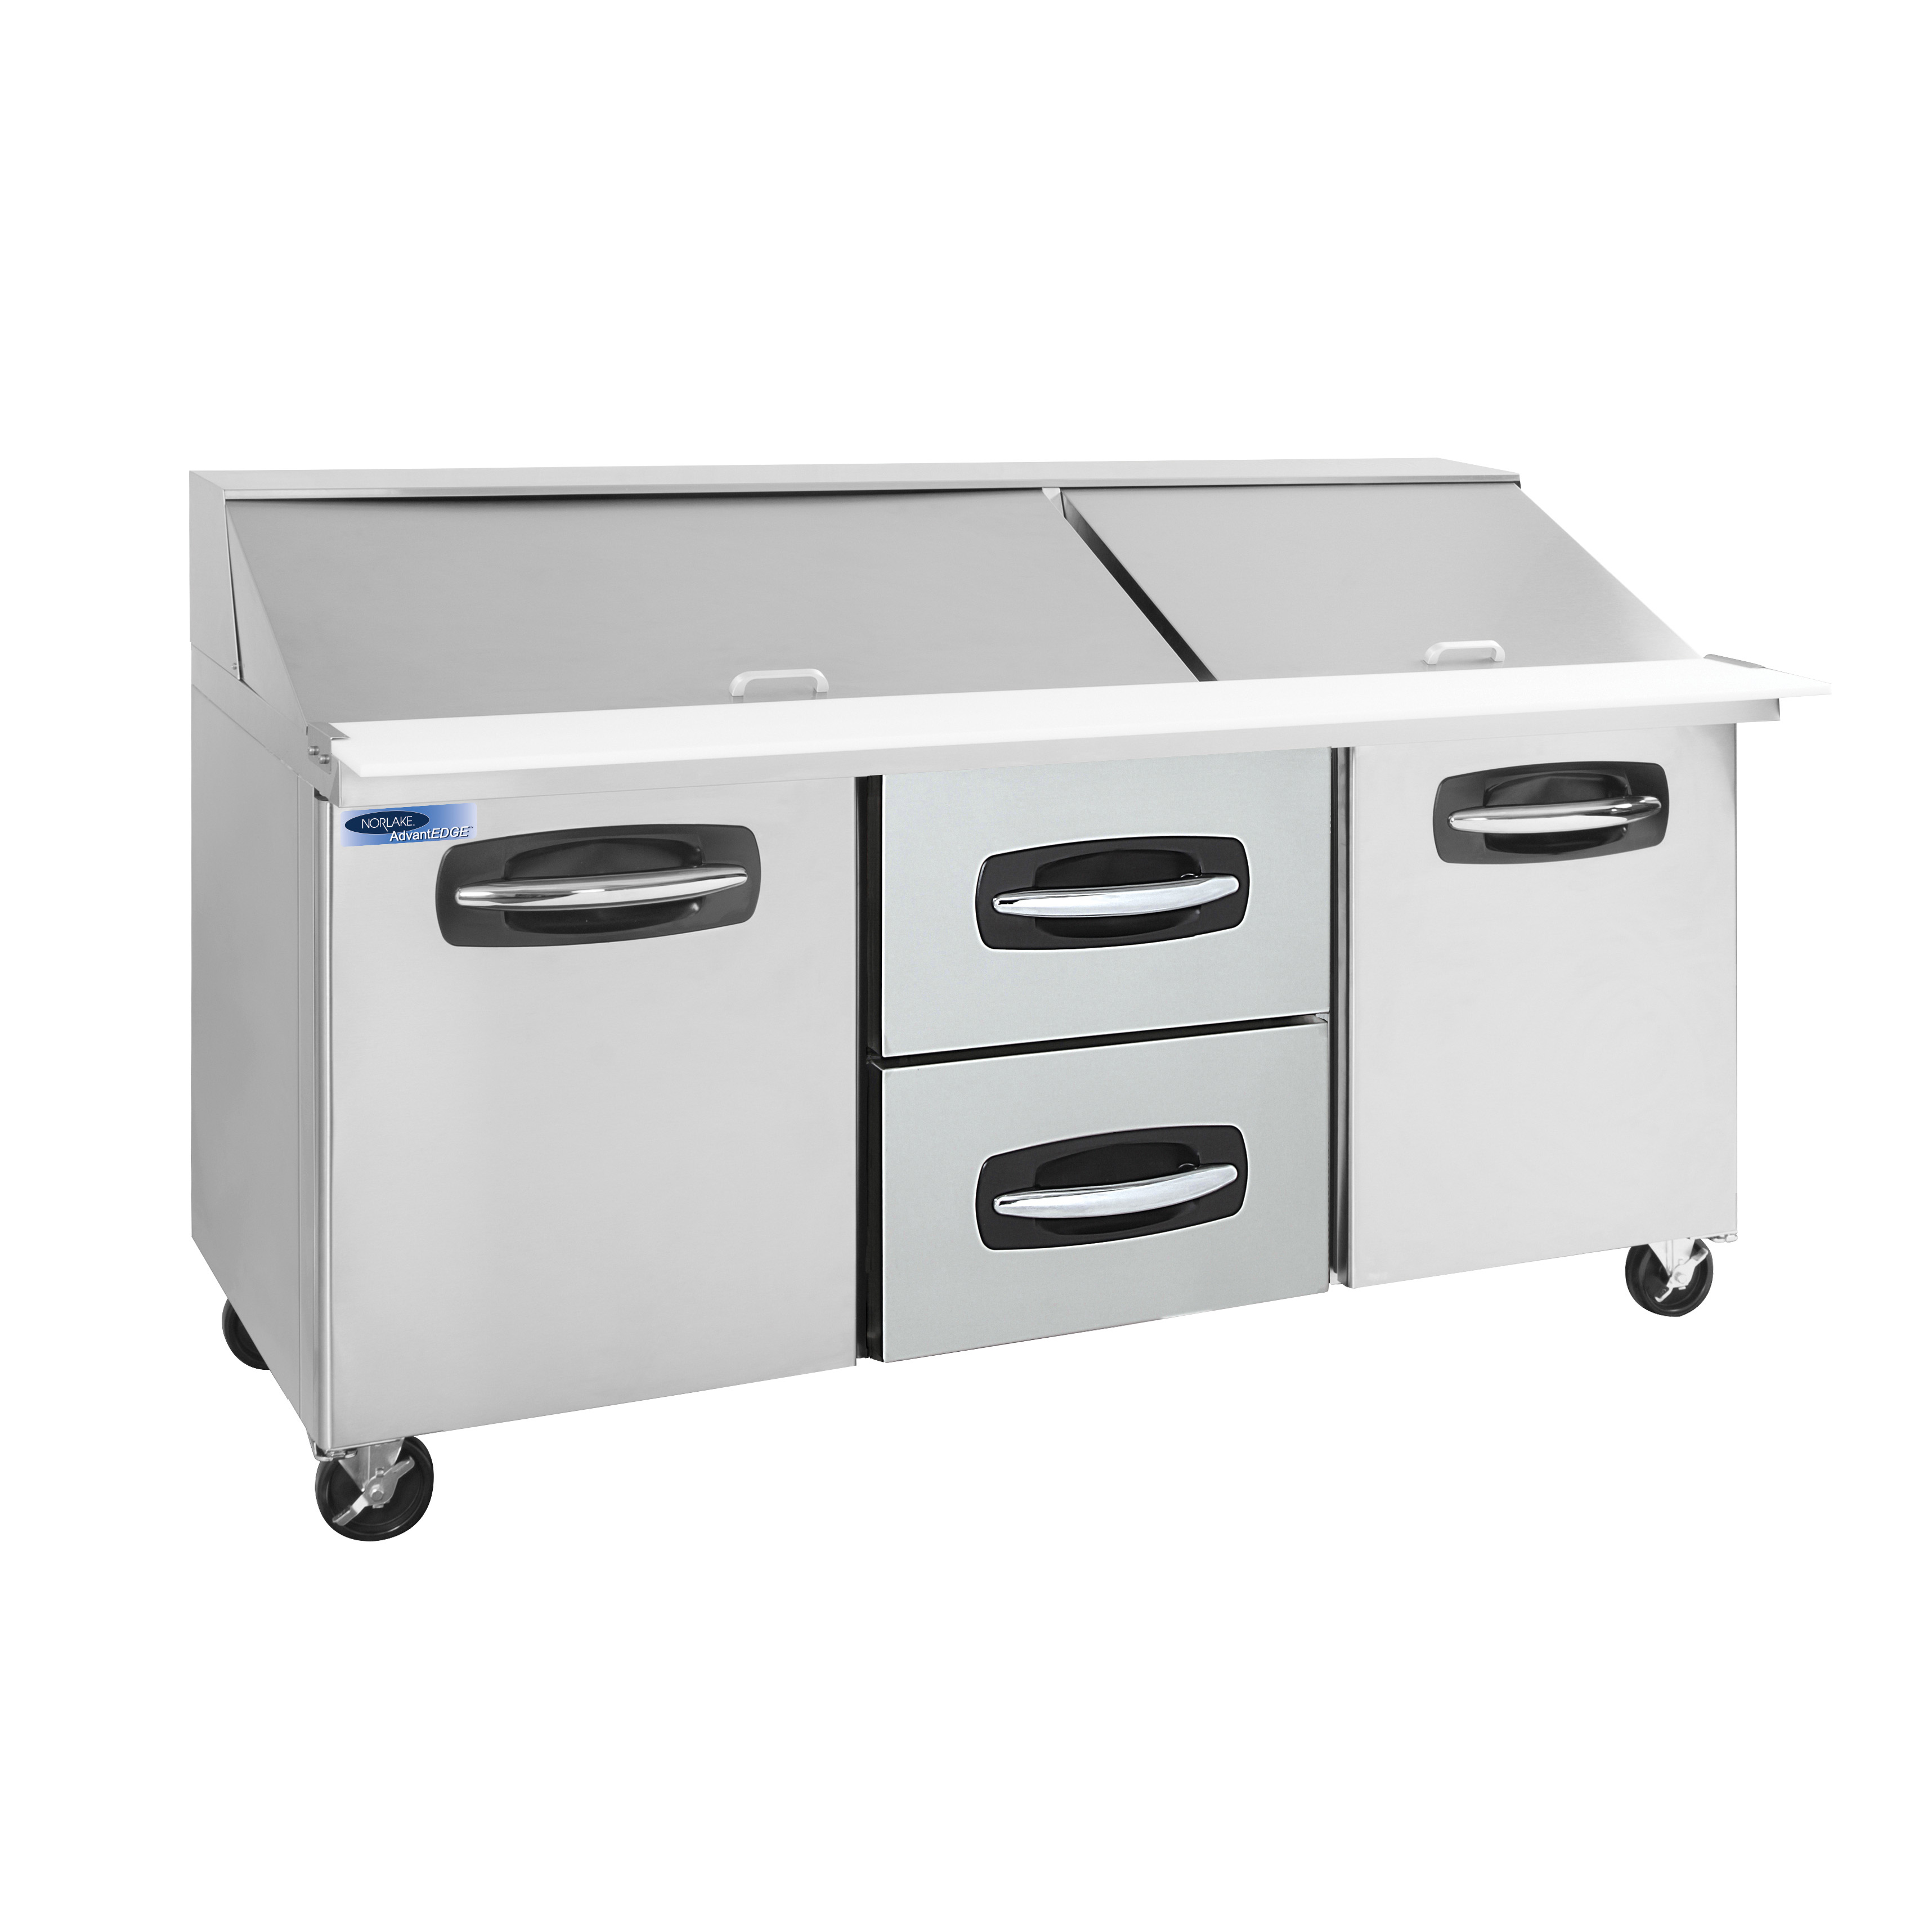 Nor-Lake NLSMP72-30A-004B refrigerated counter, mega top sandwich / salad unit